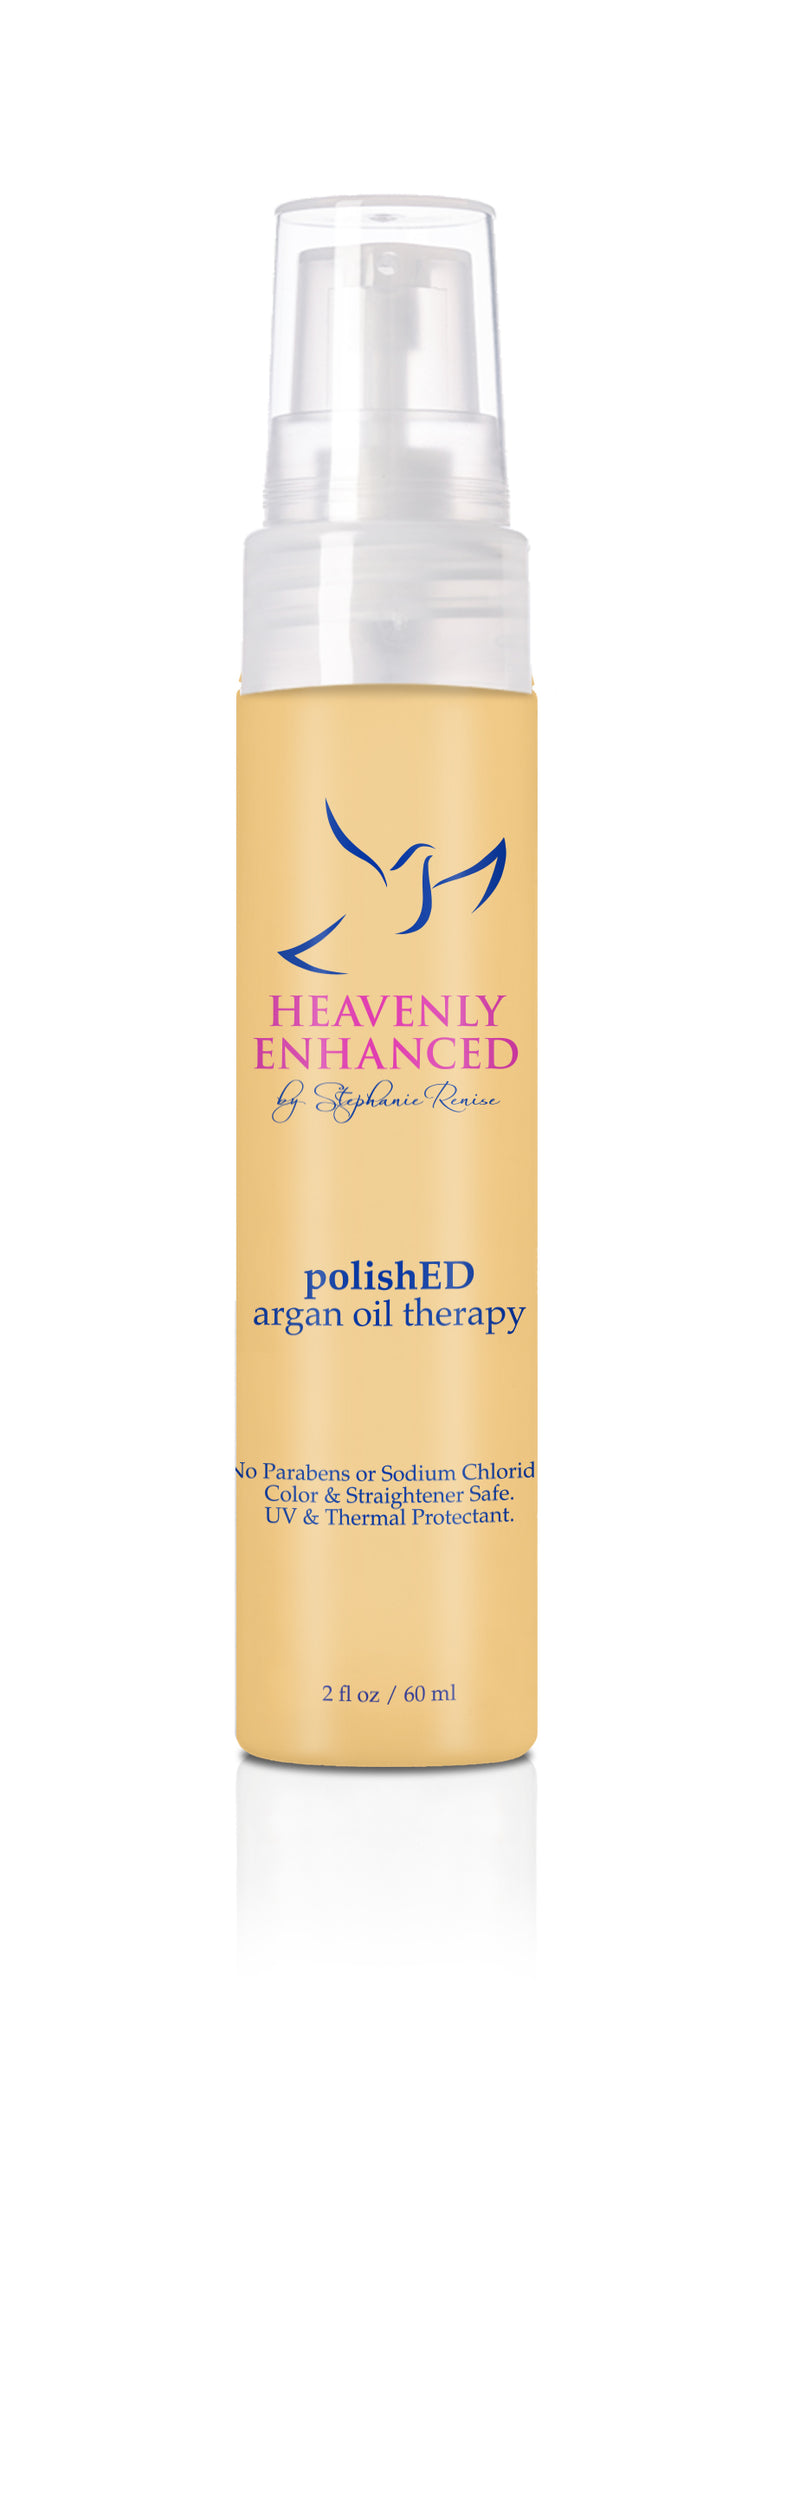 polishED - argan oil therapy